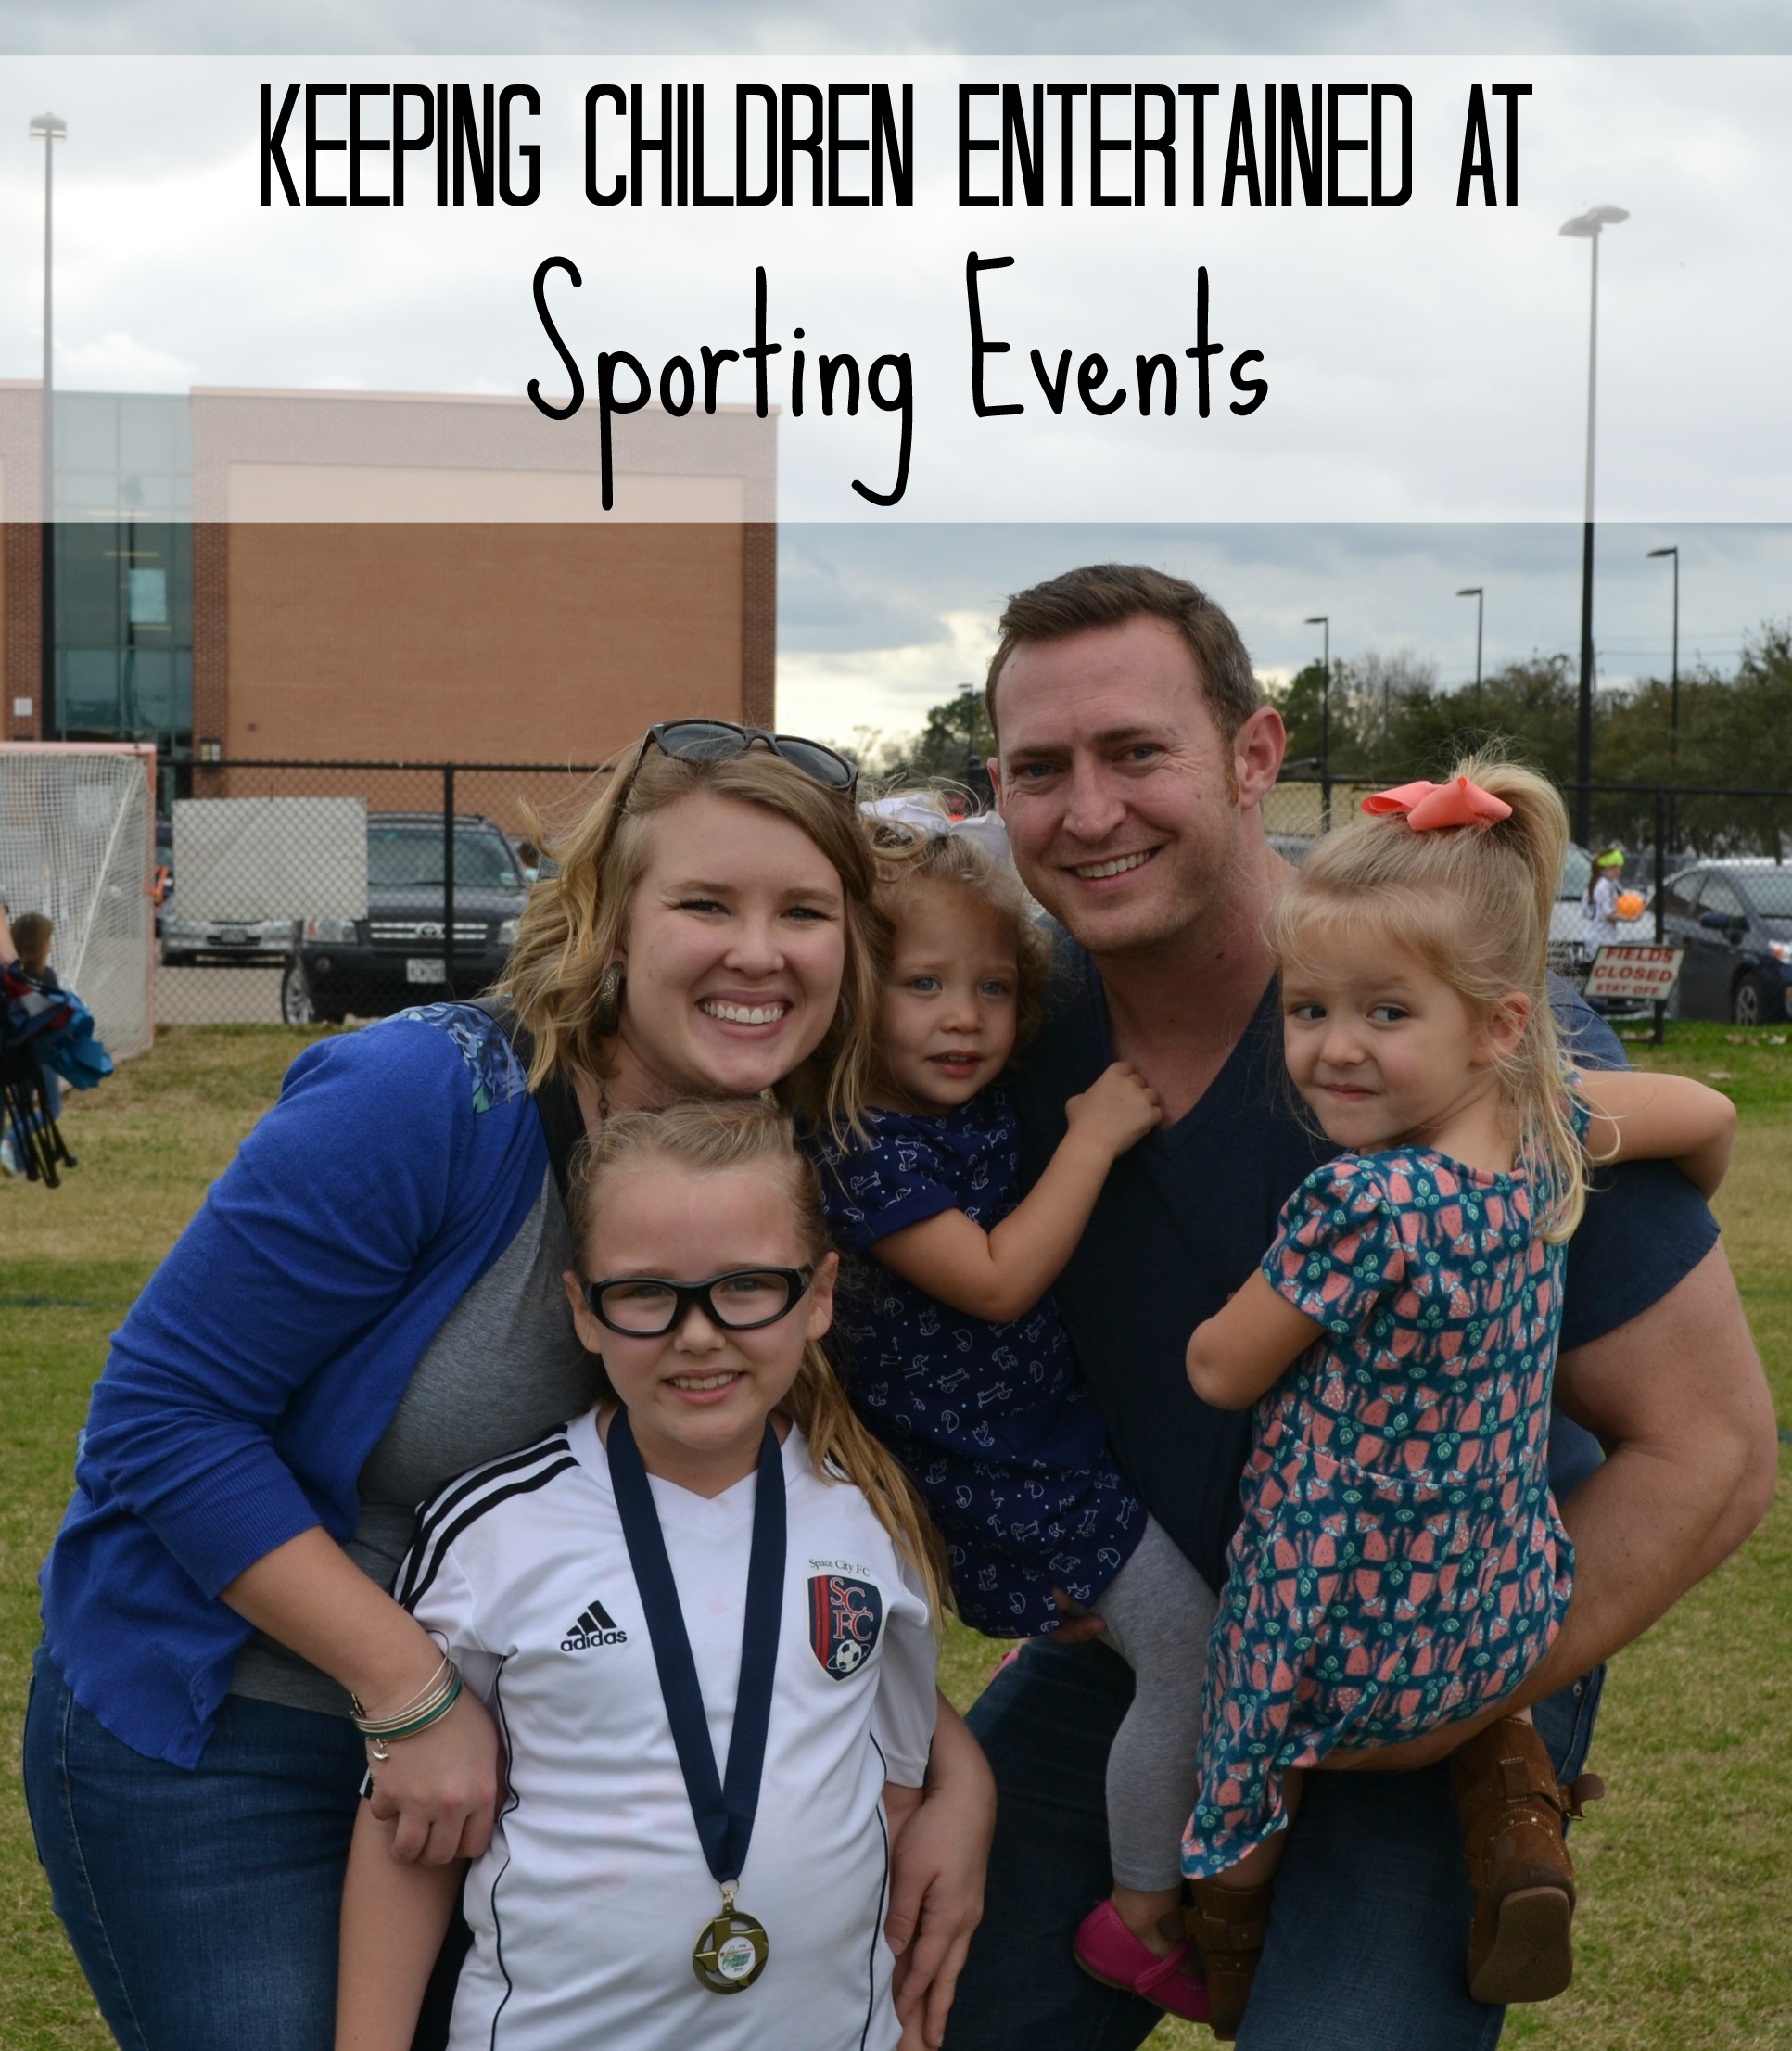 Keeping Children Entertained at Sporting Events